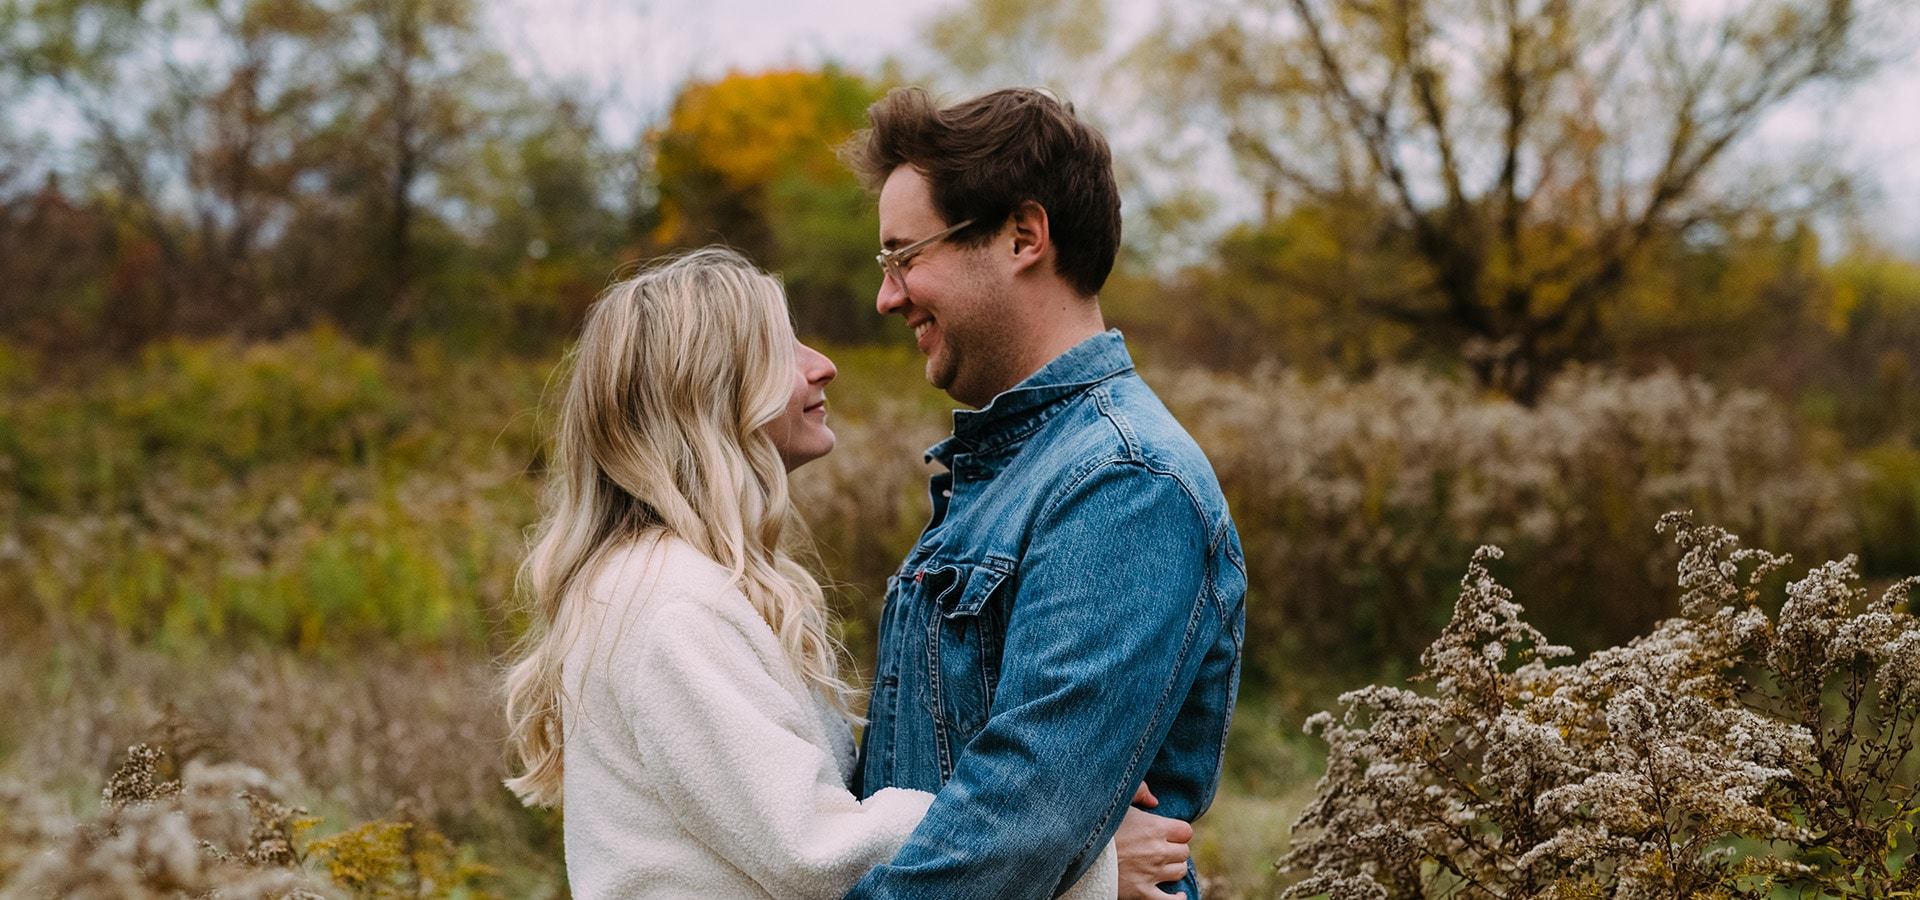 Hero image for 4 Ways Your Relationship Changes when You Get Engaged